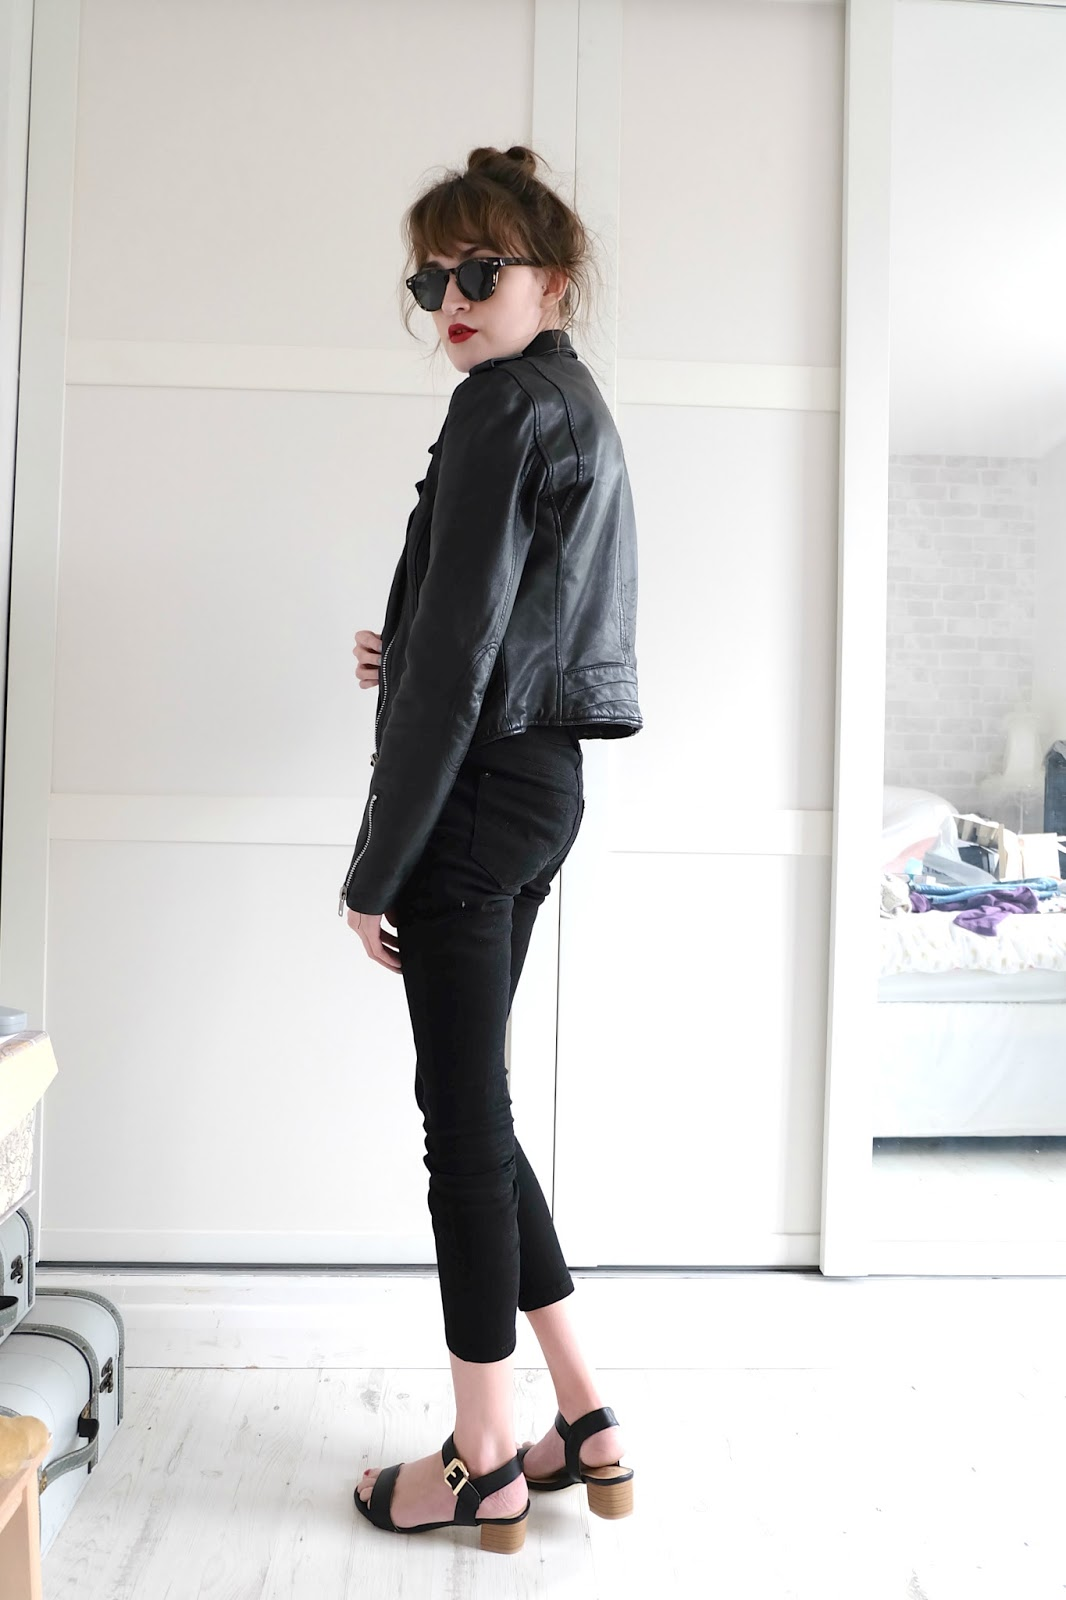 George at ADSA £10 Black Jeans review